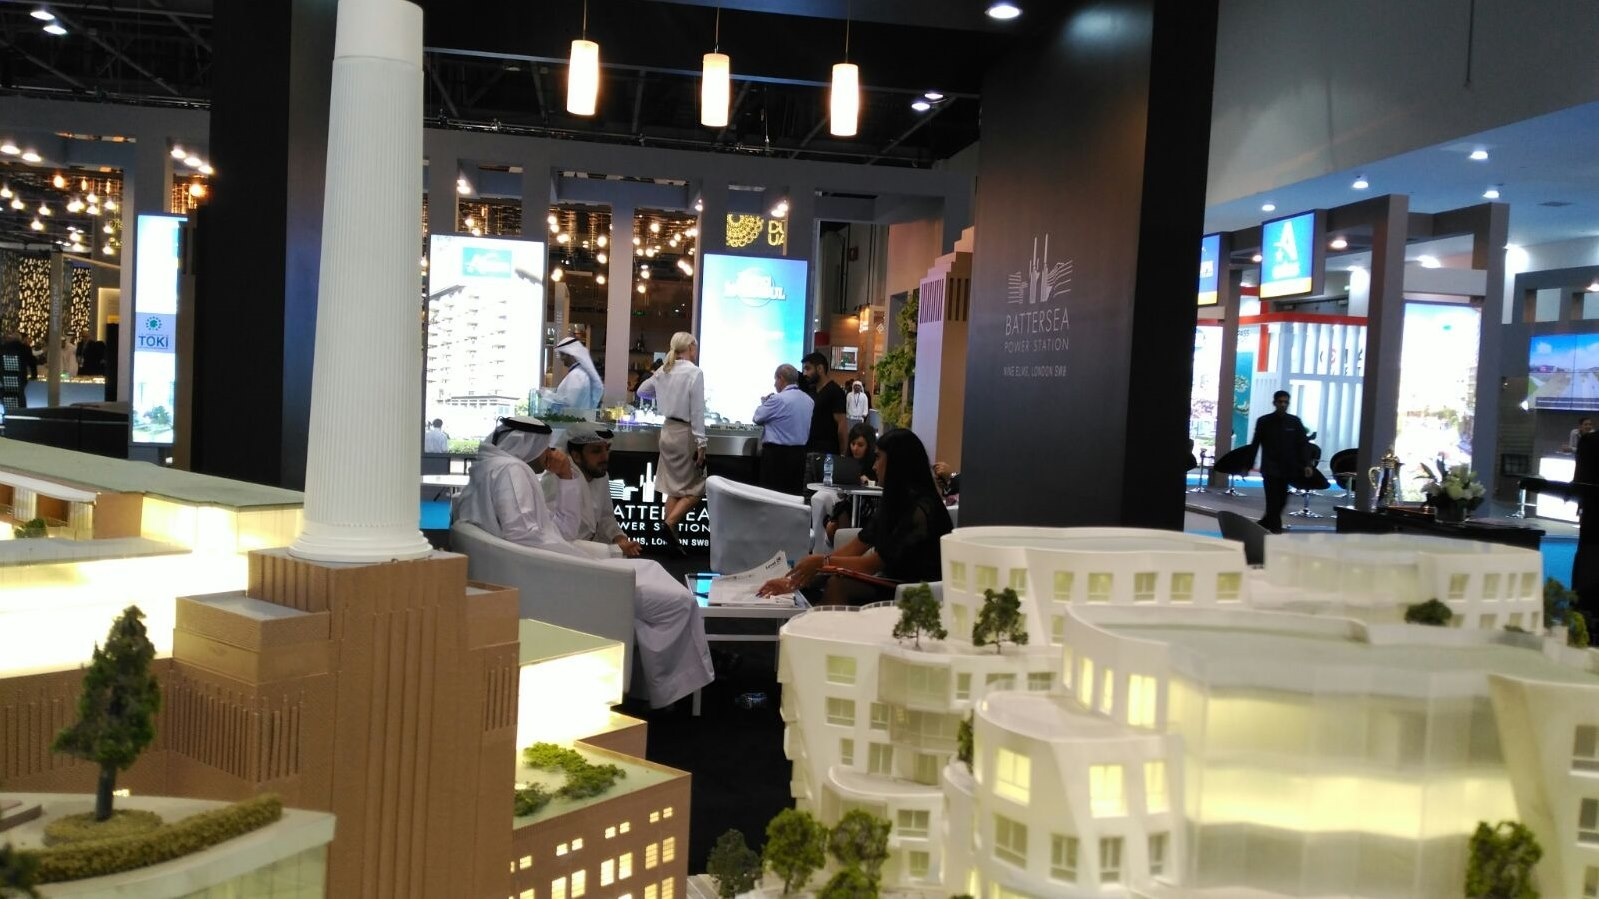 Our findings from Cityscape Global 2017